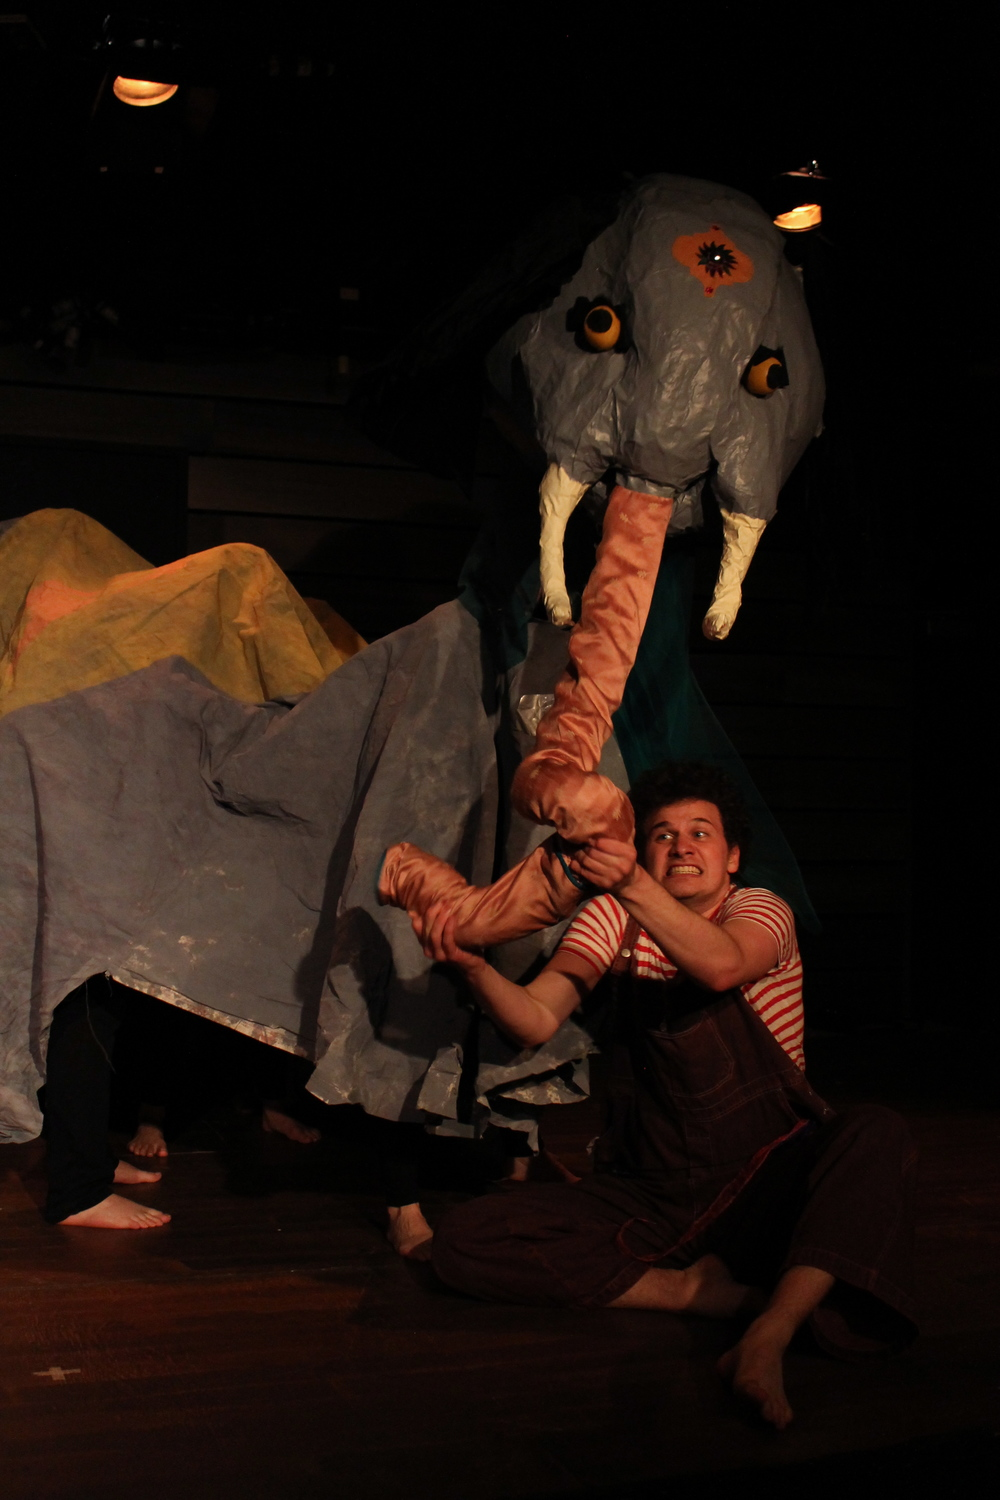 Jack Meets the Cat, directed by Sara Tilley for the Stephenville Theatre Festival, 2014. Featuring Erik Mrakovcic and elephant puppet designed by Tara Manuel, photo by Stephen Tracey.